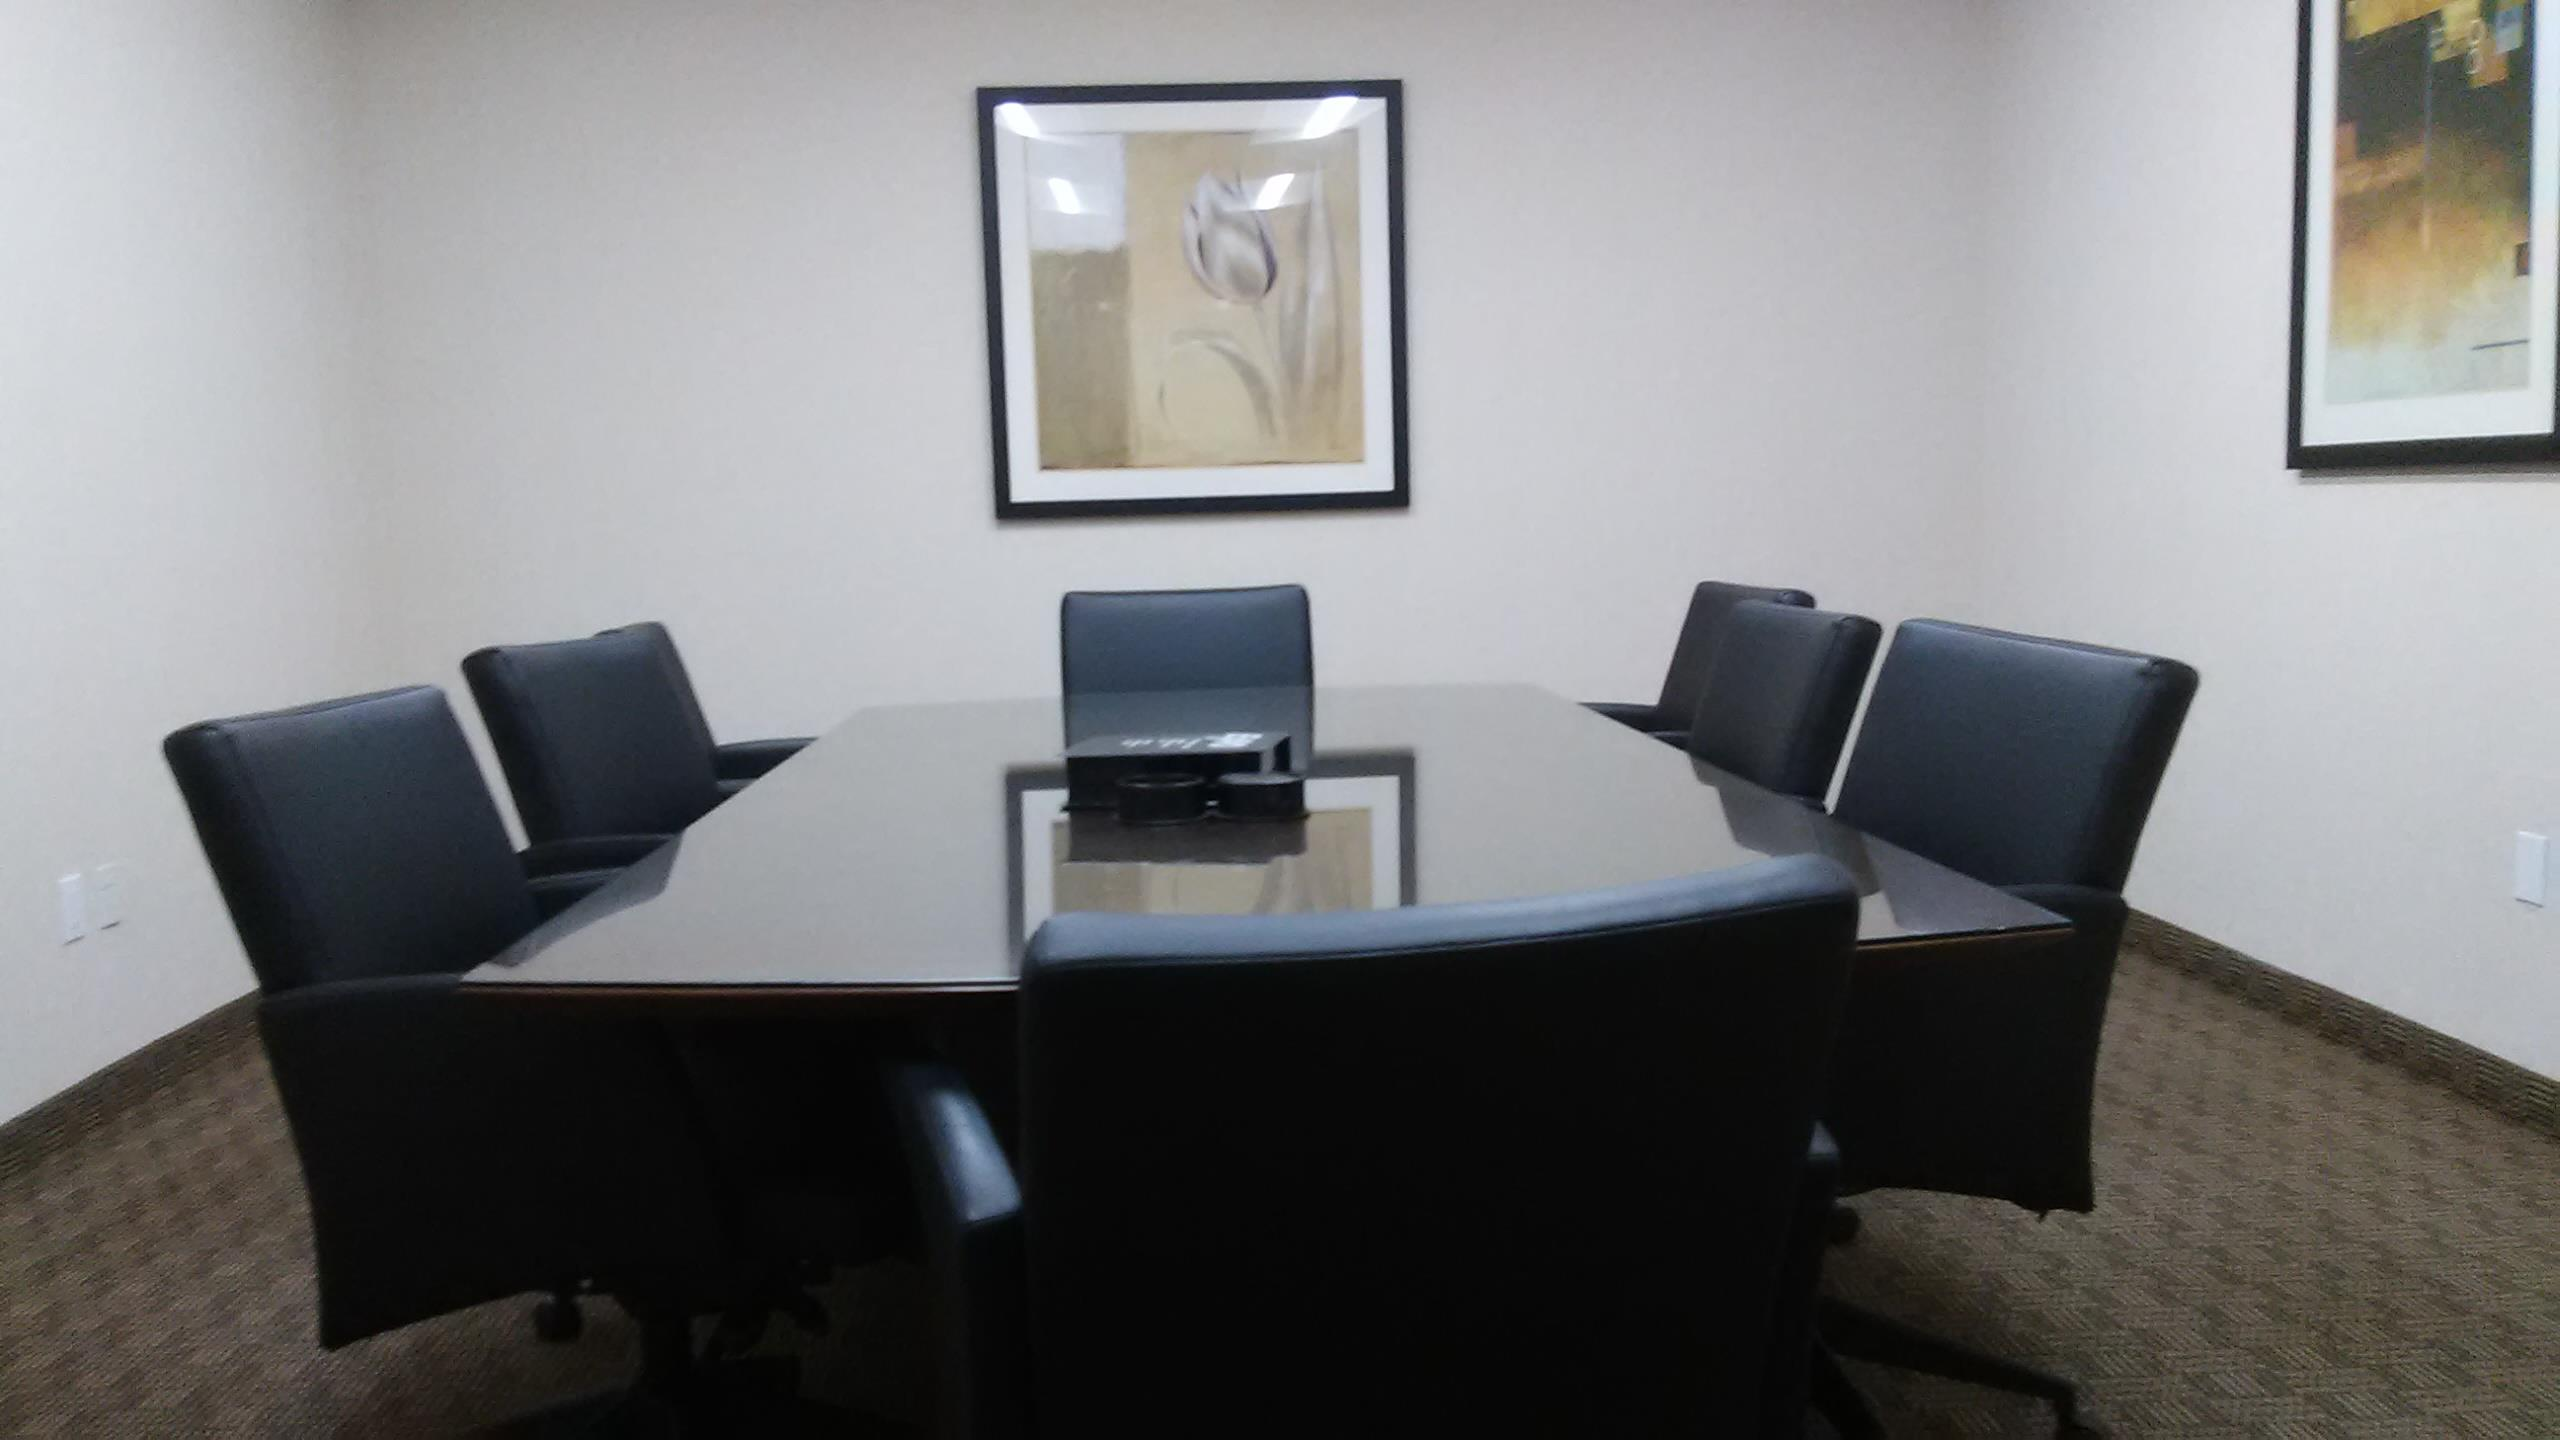 officeLOCALE Coworking Space and Business Center - Shared Conference Room